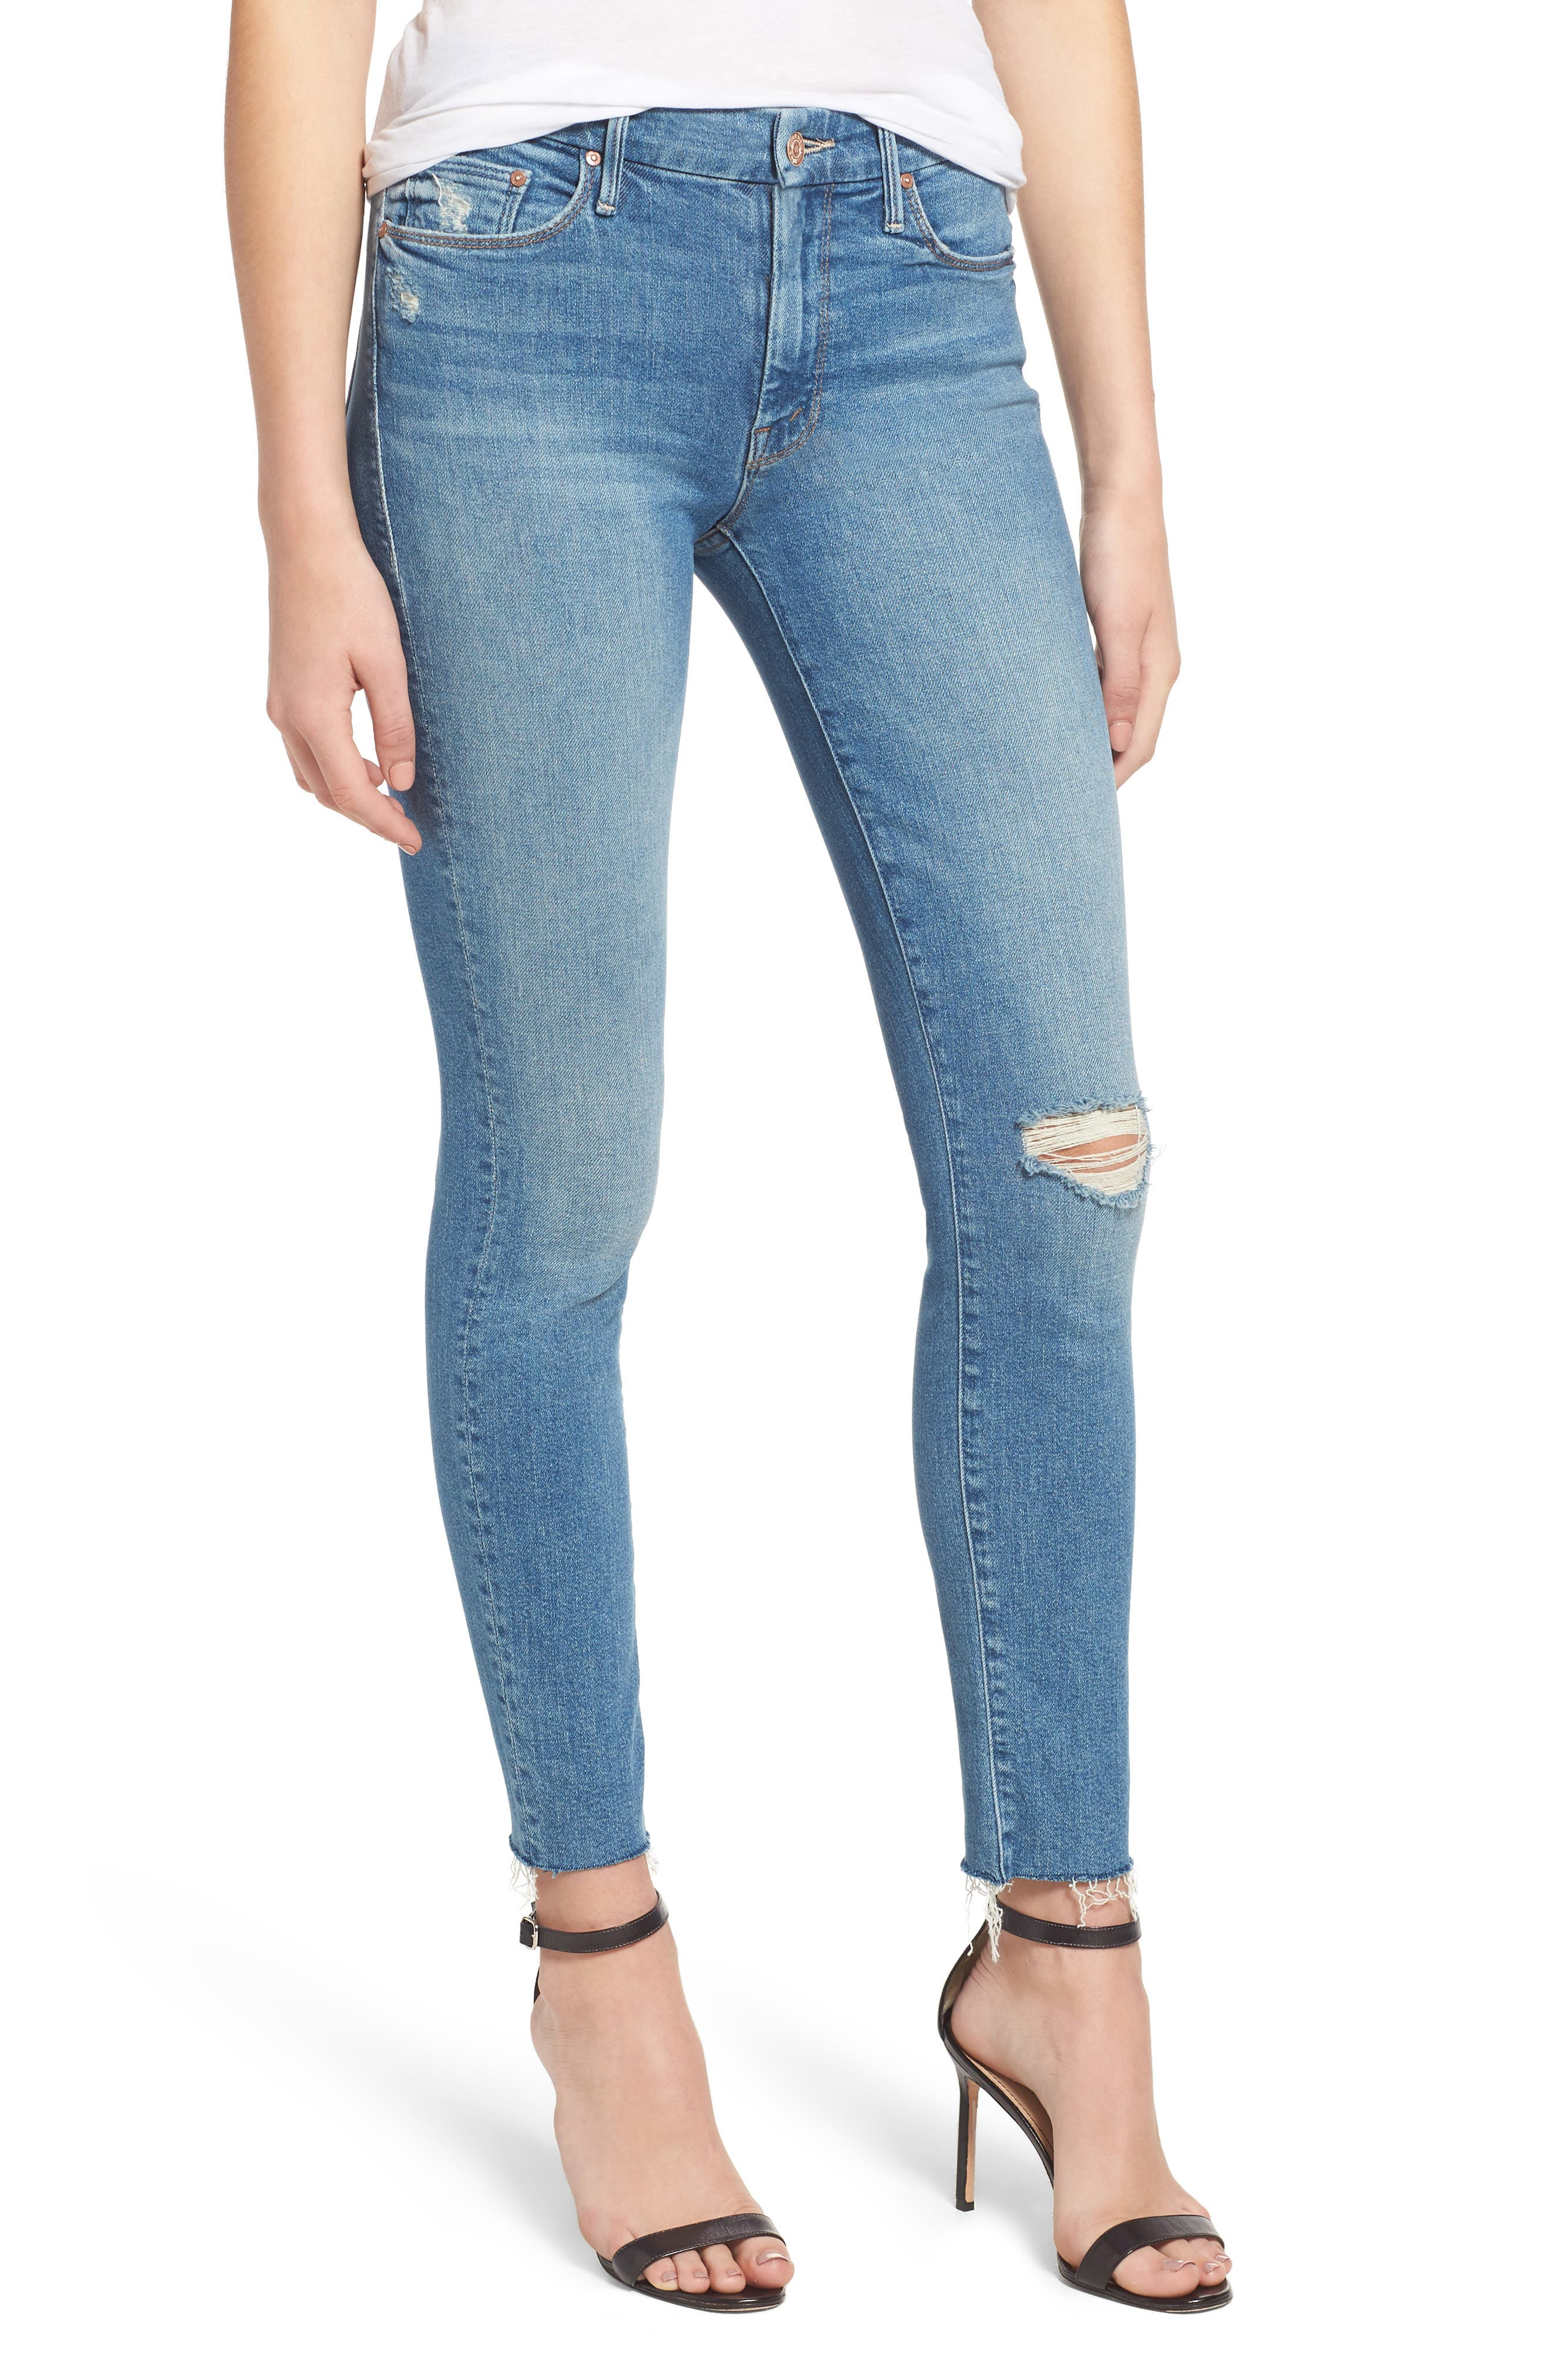 MOTHER, The Looker Frayed Ankle Skinny Jeans, Main thumbnail 1, color, LOVE GUN